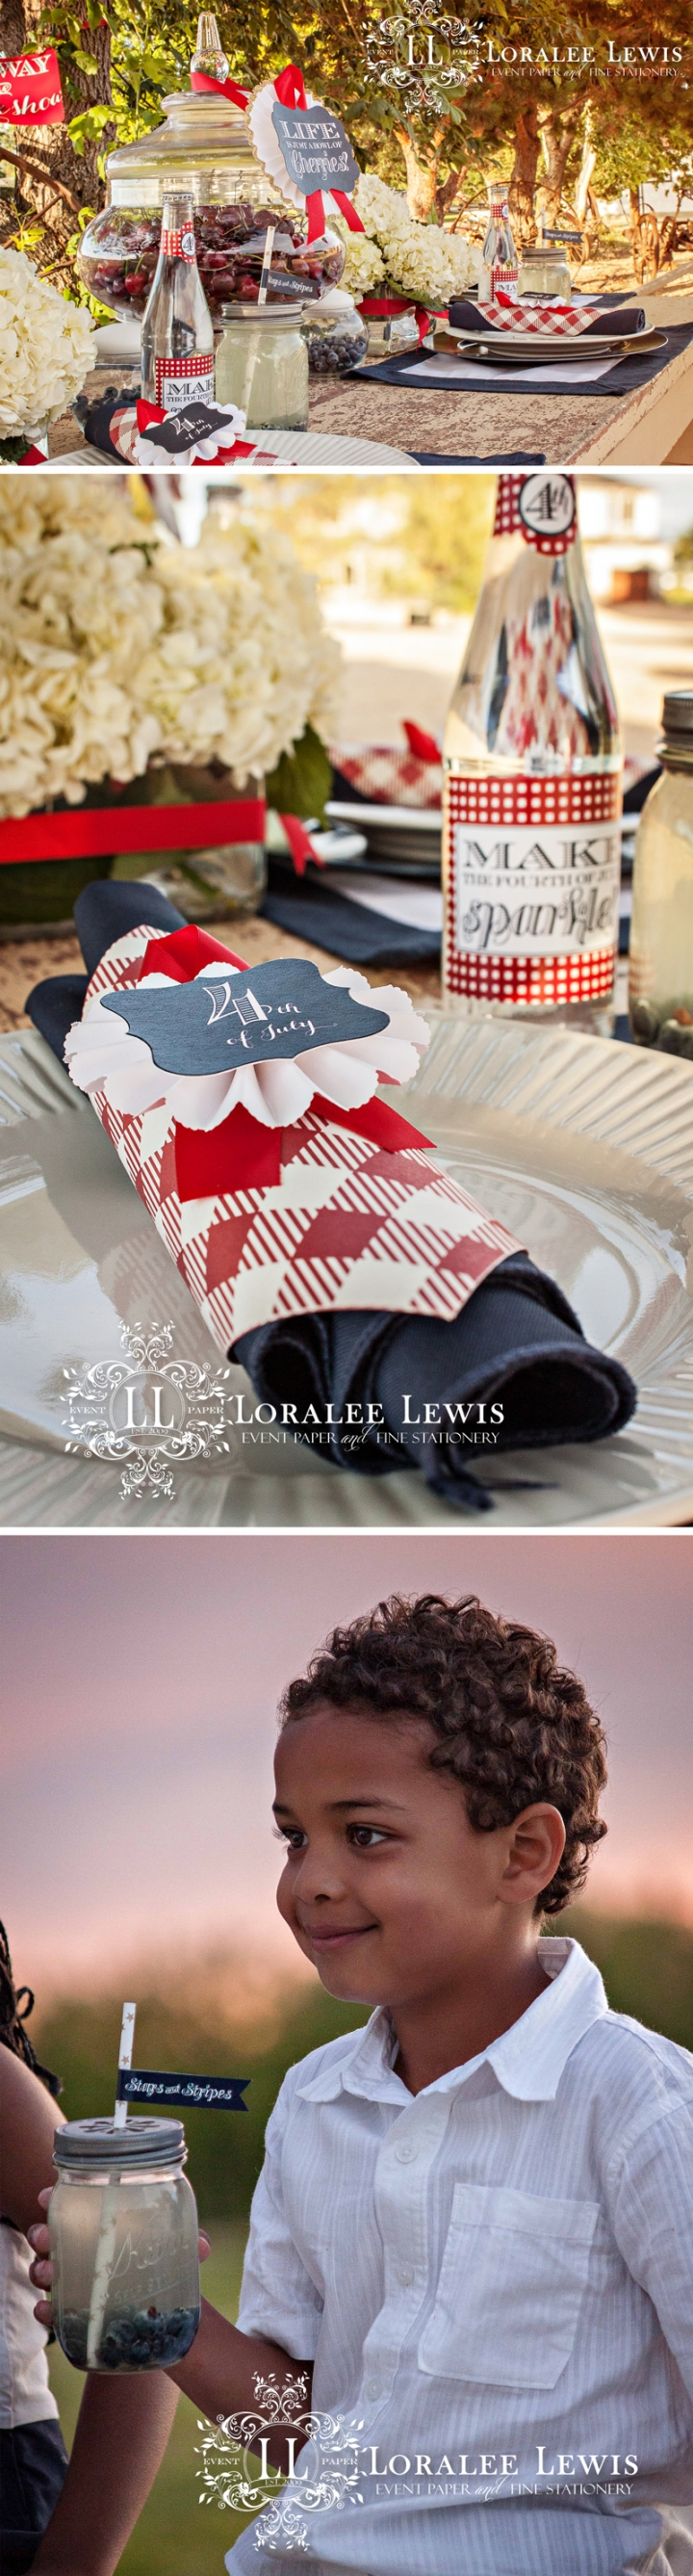 LoraleeLewis-American-Collection13